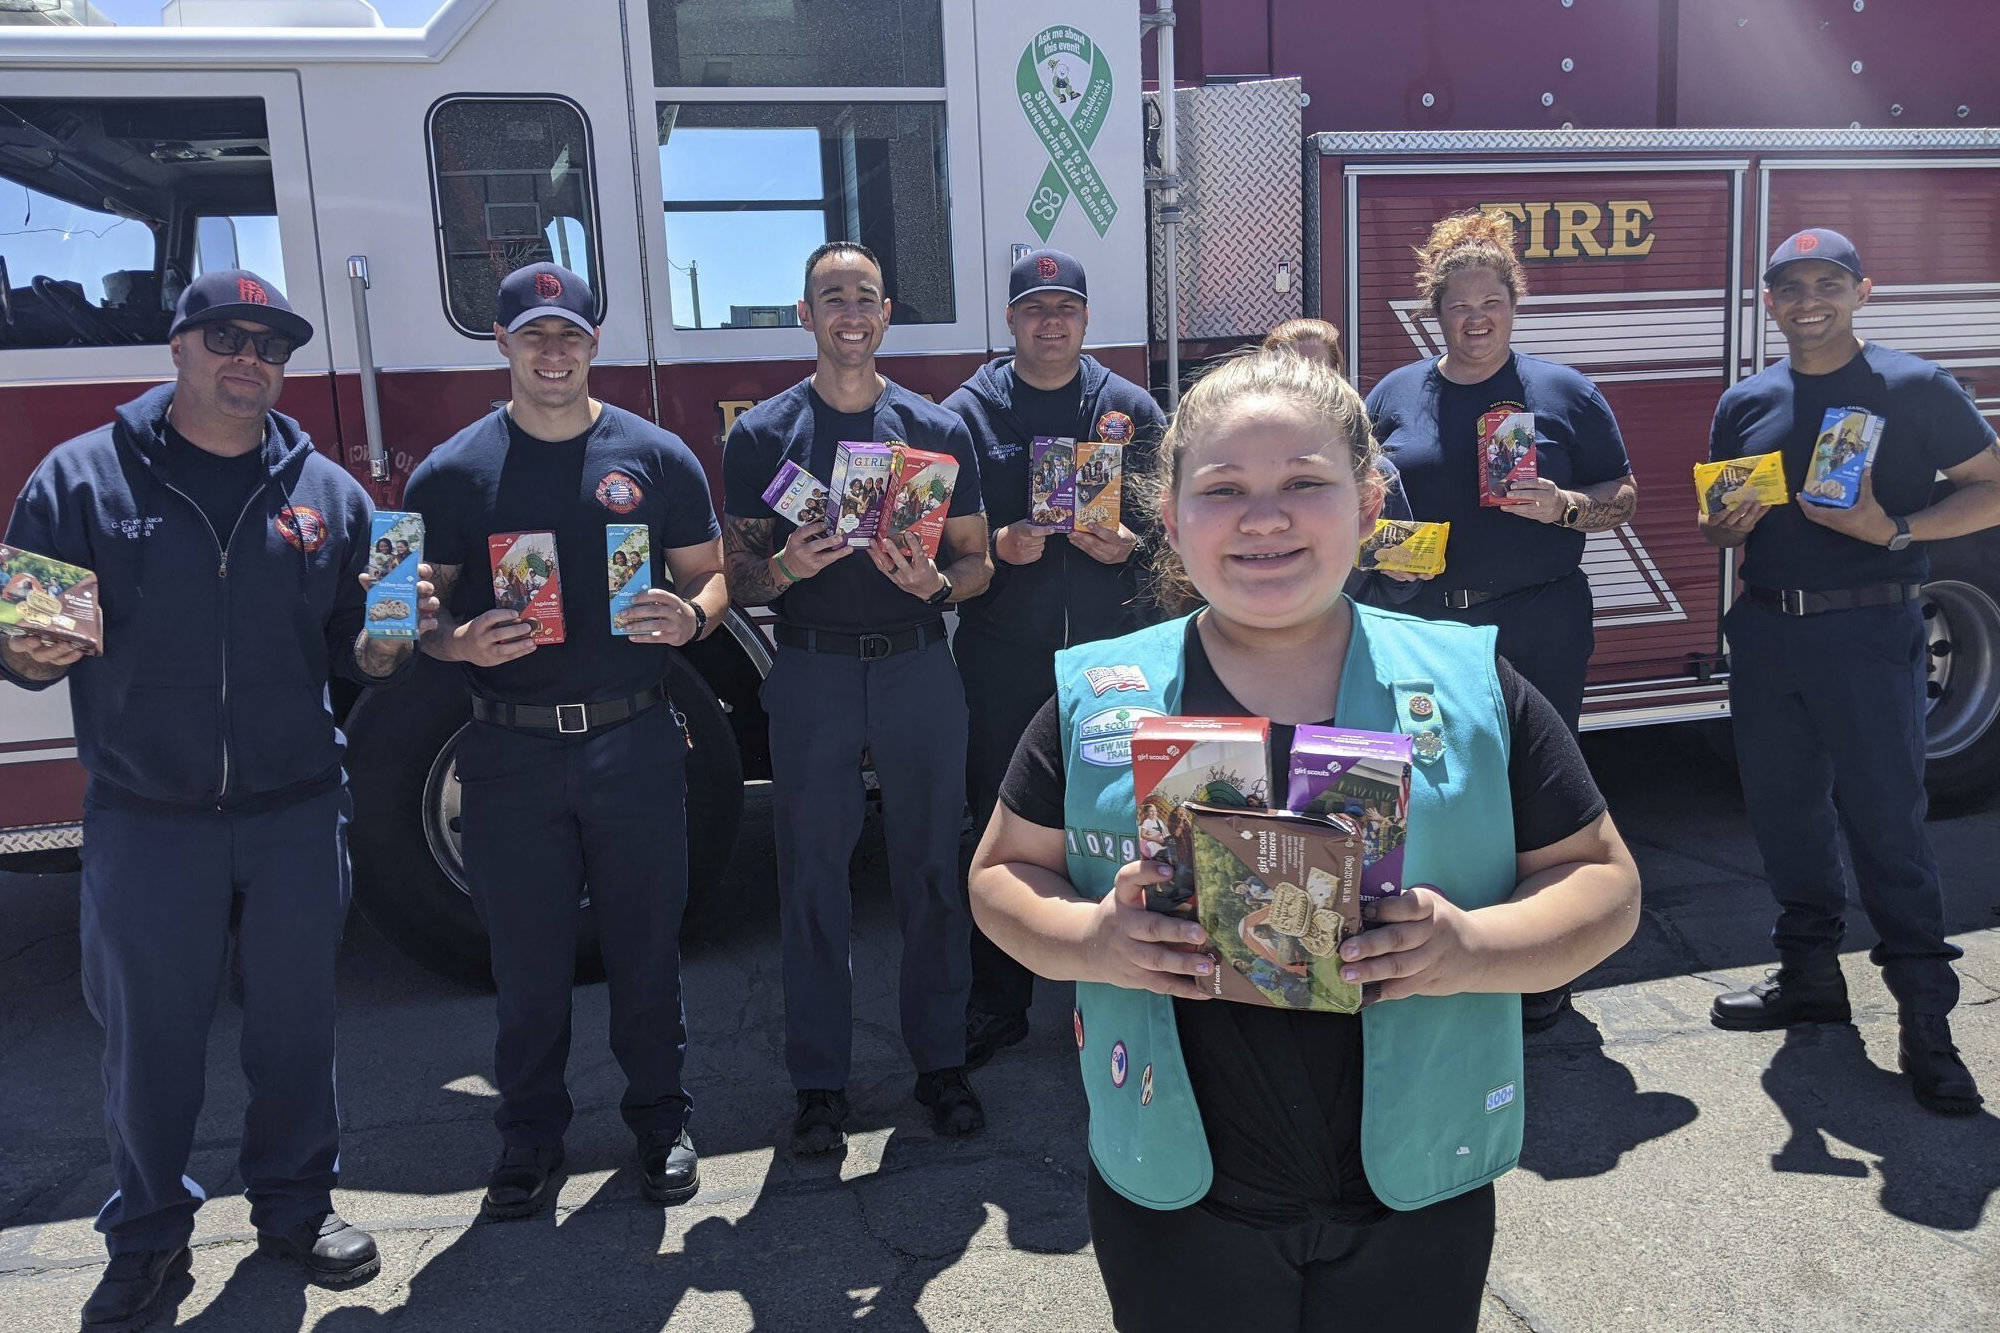 This undated photo provided by Girl Scouts of New Mexico Trails shows a scout donating cookies to firefighters in Rio Rancho, New Mexico, as part of the Hometown Heroes program. As the coronavirus pandemic wore into the spring selling season, many Girl Scout troops nixed their traditional cookie booths for safety reasons. That resulted in millions of boxes of unsold cookies. (Girl Scouts of New Mexico Trails via AP)